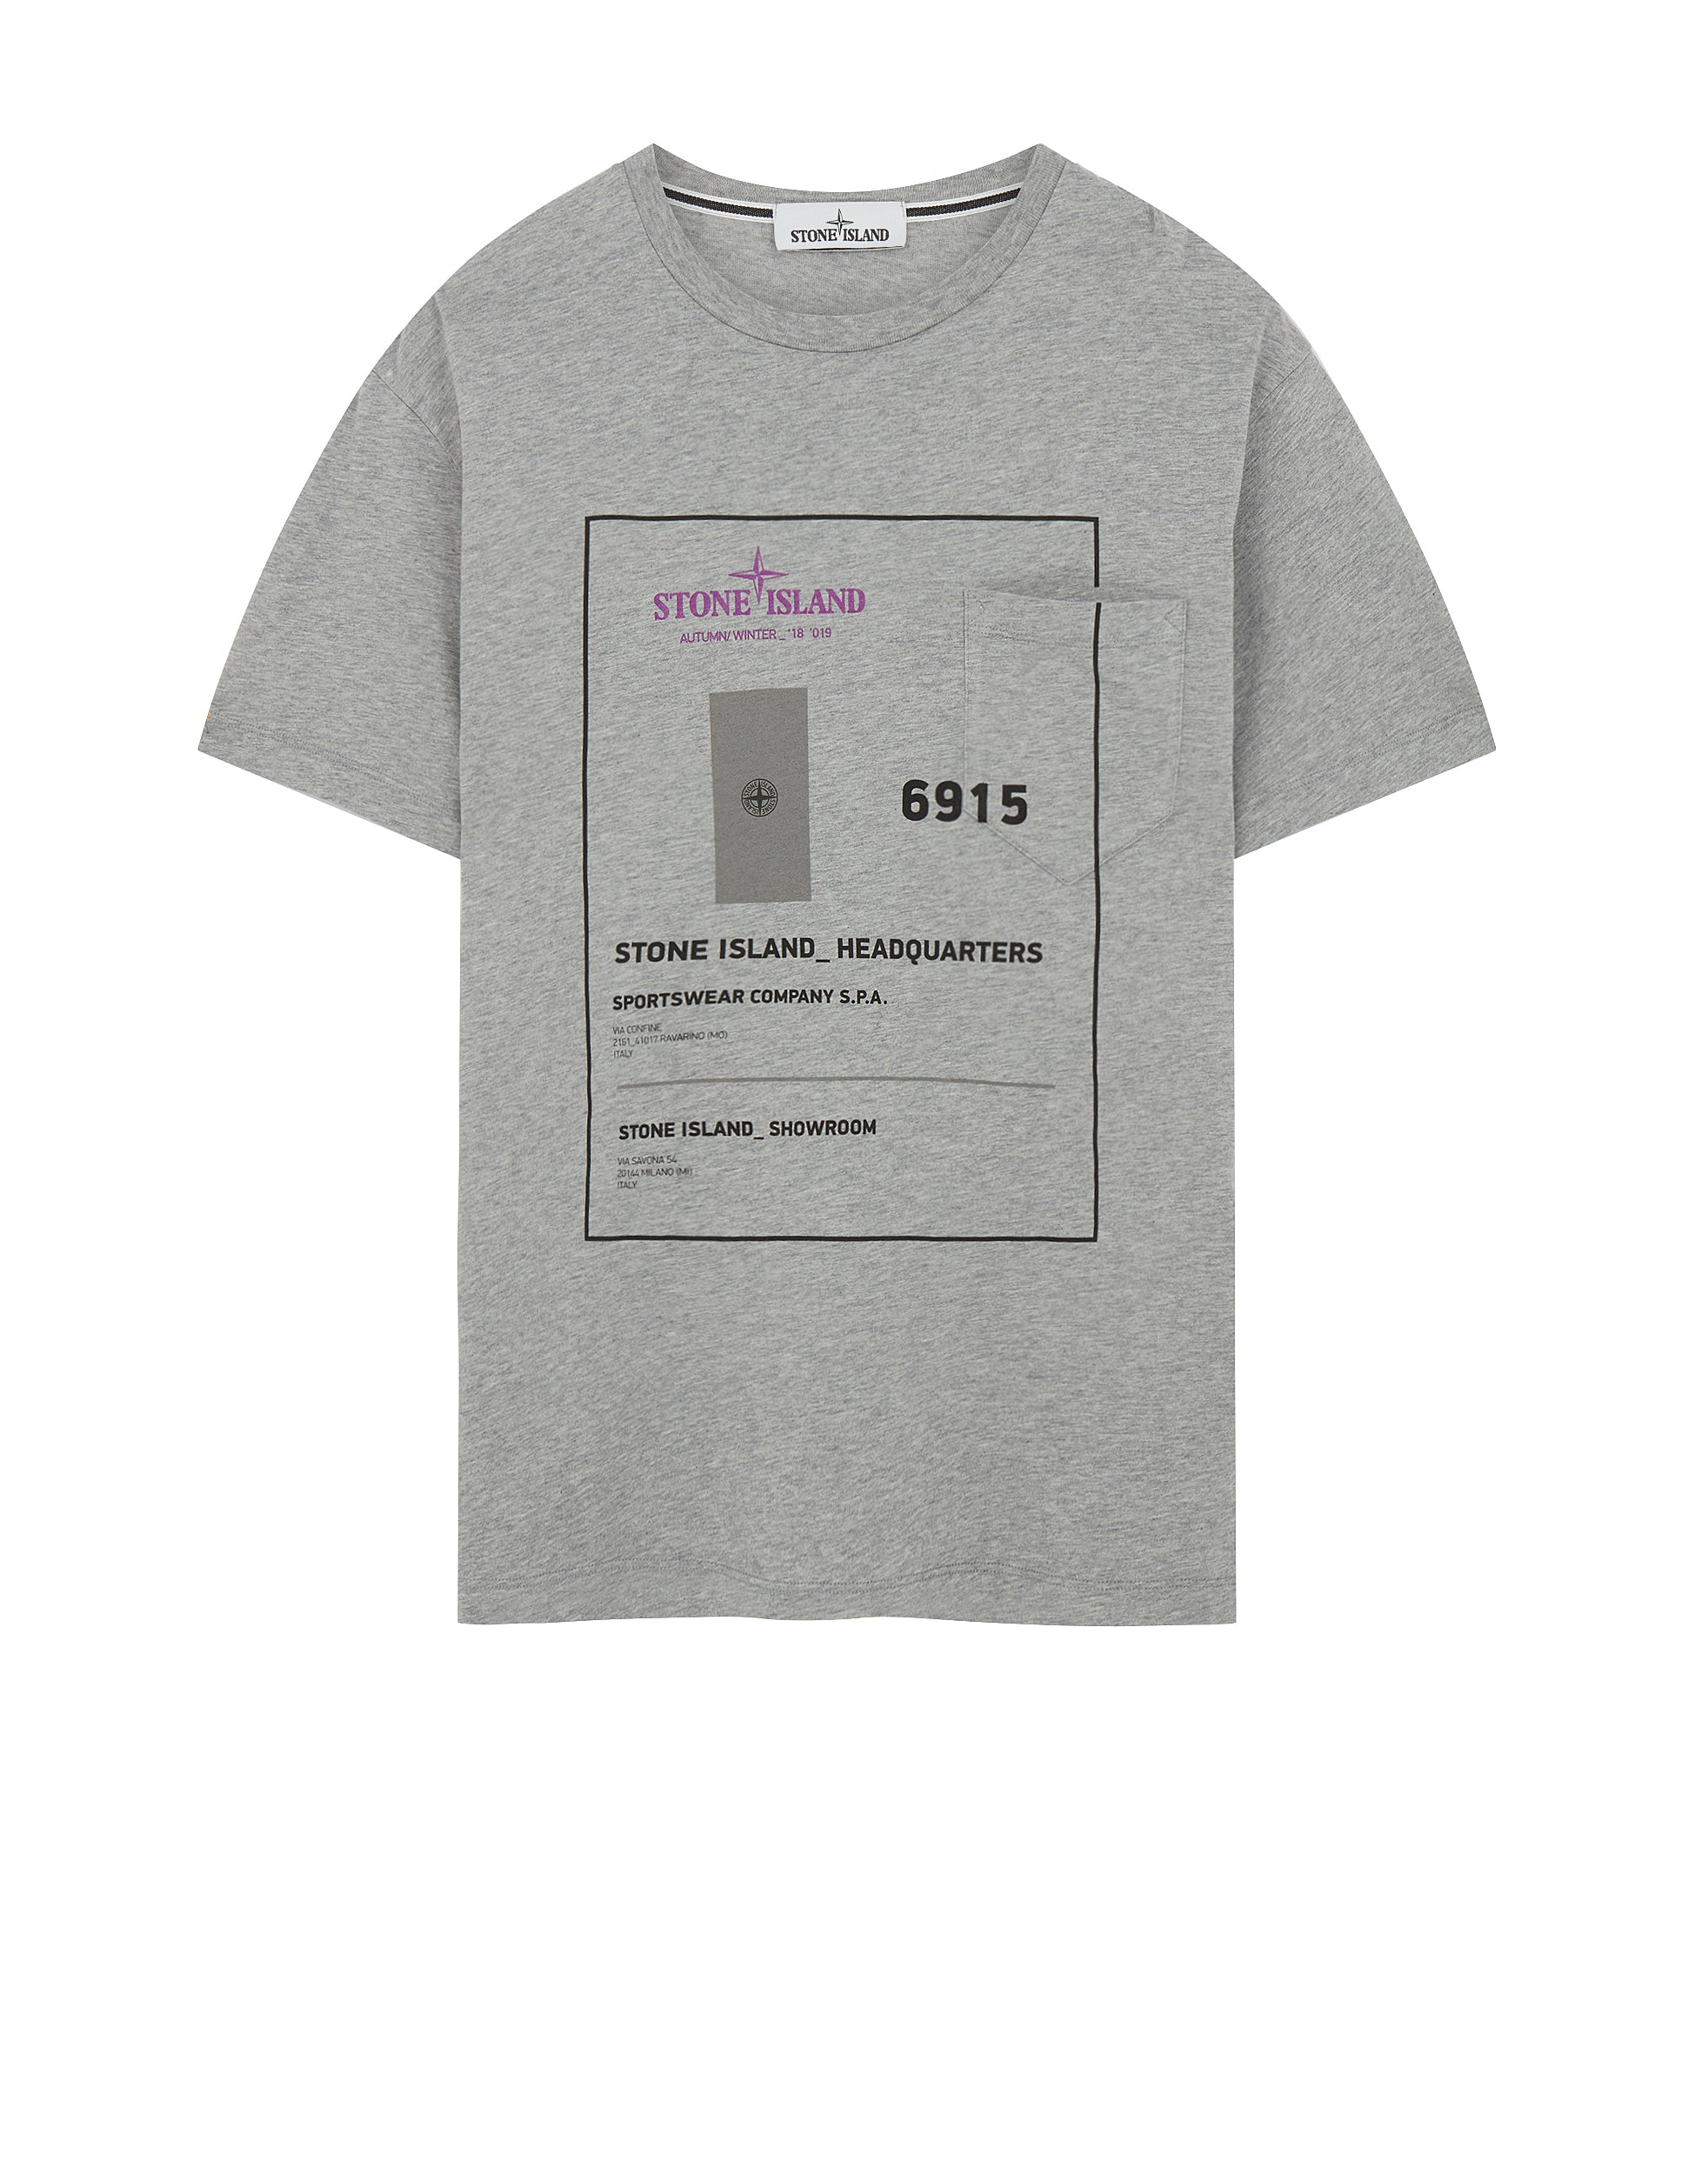 23783 INDUSTRIAL 3 T-Shirt in Dust